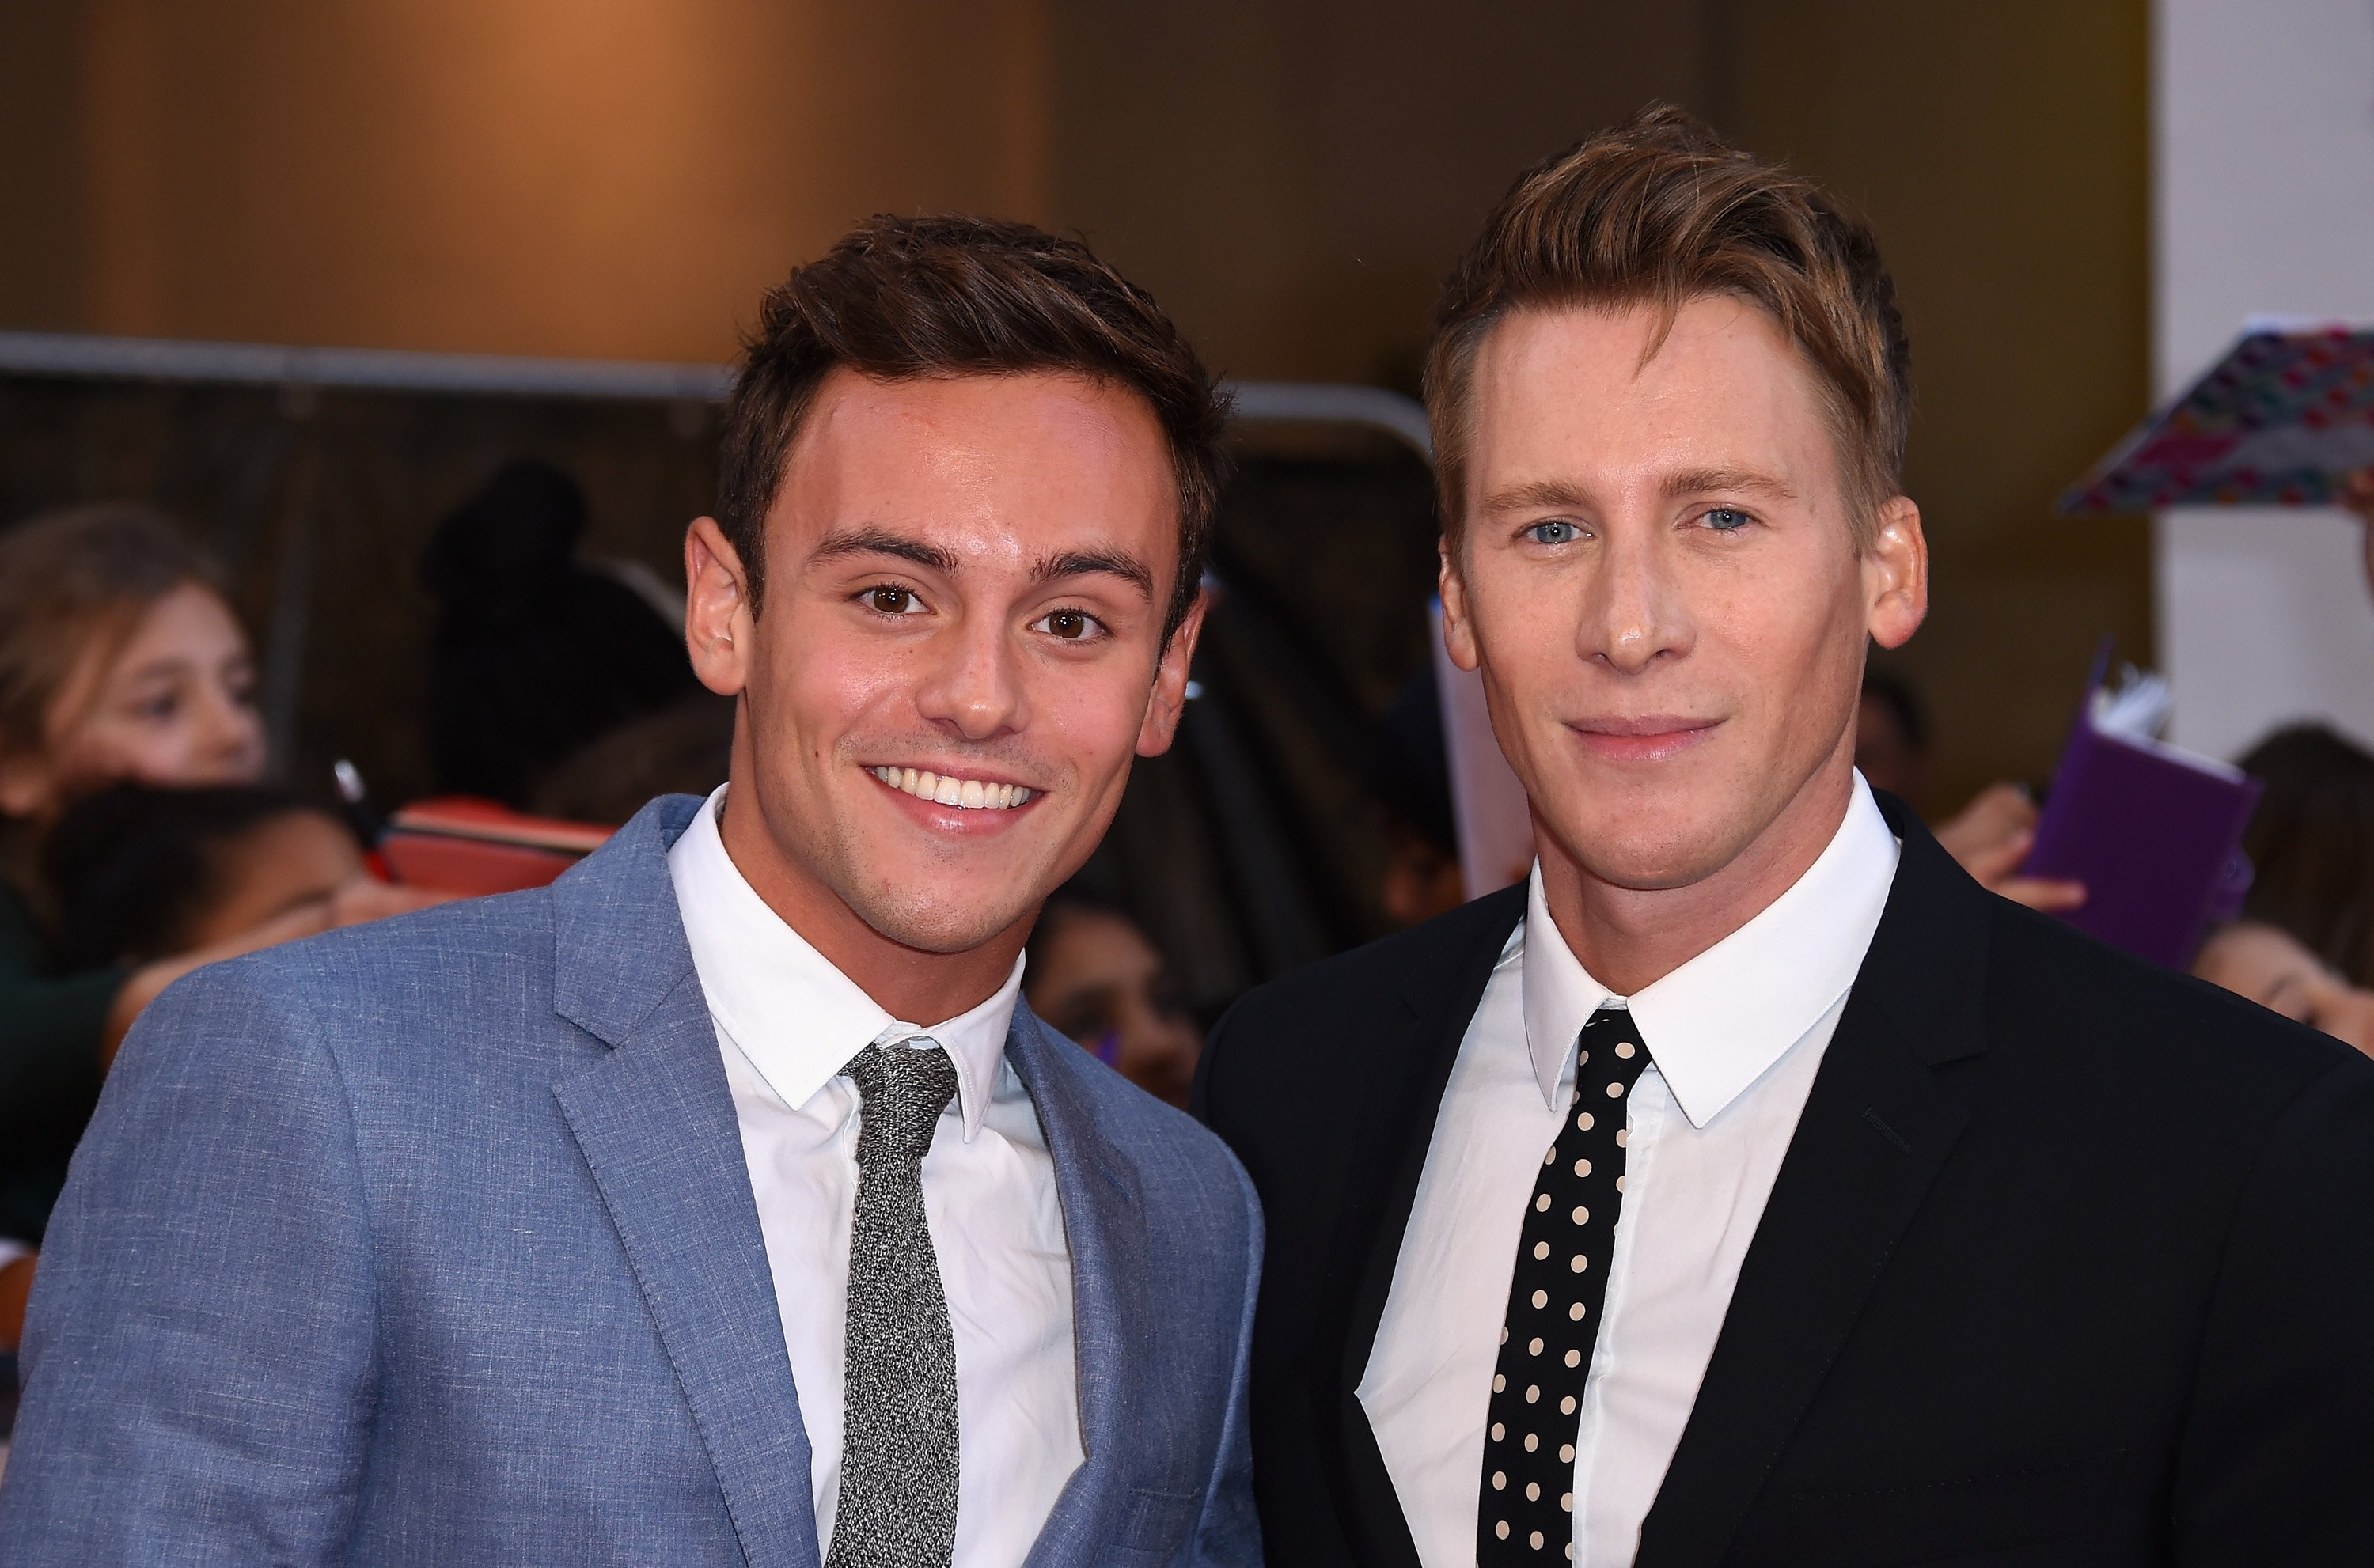 Tom Daley is taking a dive into parenthood. The Olympic diving medalist announced on Wednesday that he and his husband, Dustin Lance Black, are having a baby. Daley, 23, posted a photo of himself and Black, 43, on Instagram holding an ultrasound image...